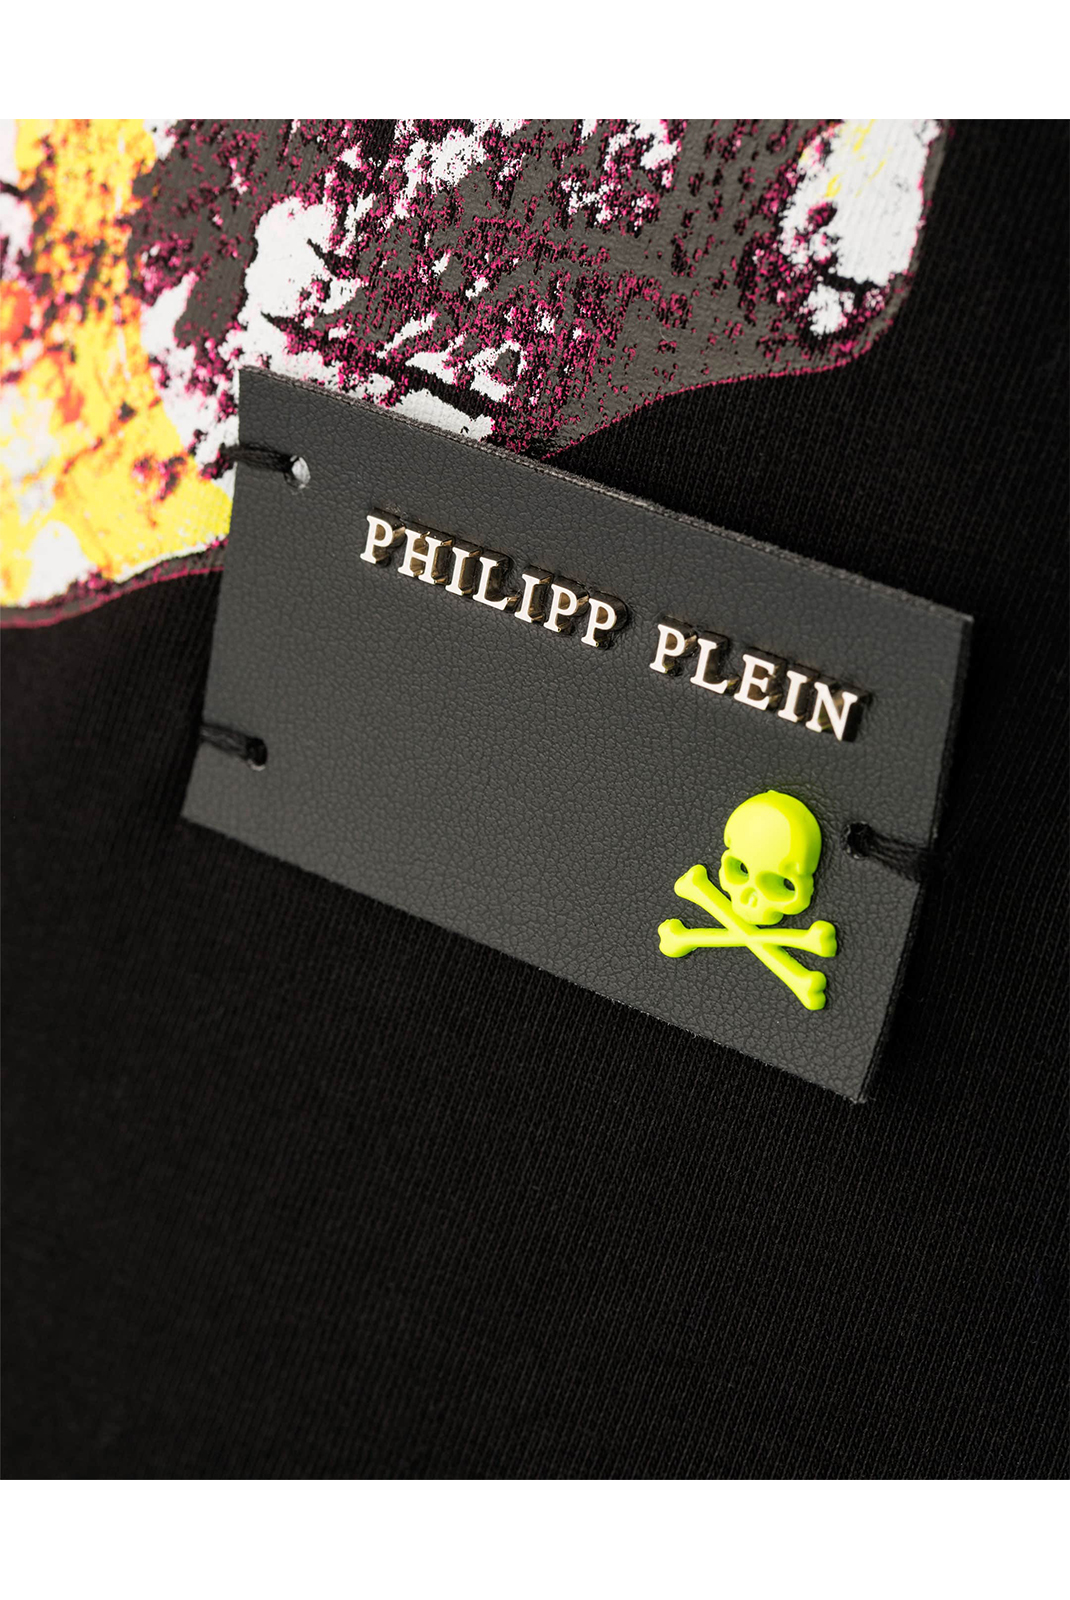 PHILIPP PLEIN TEE-SHIRT MTK1791 ROUND NECK SS NEED YOU HOMME